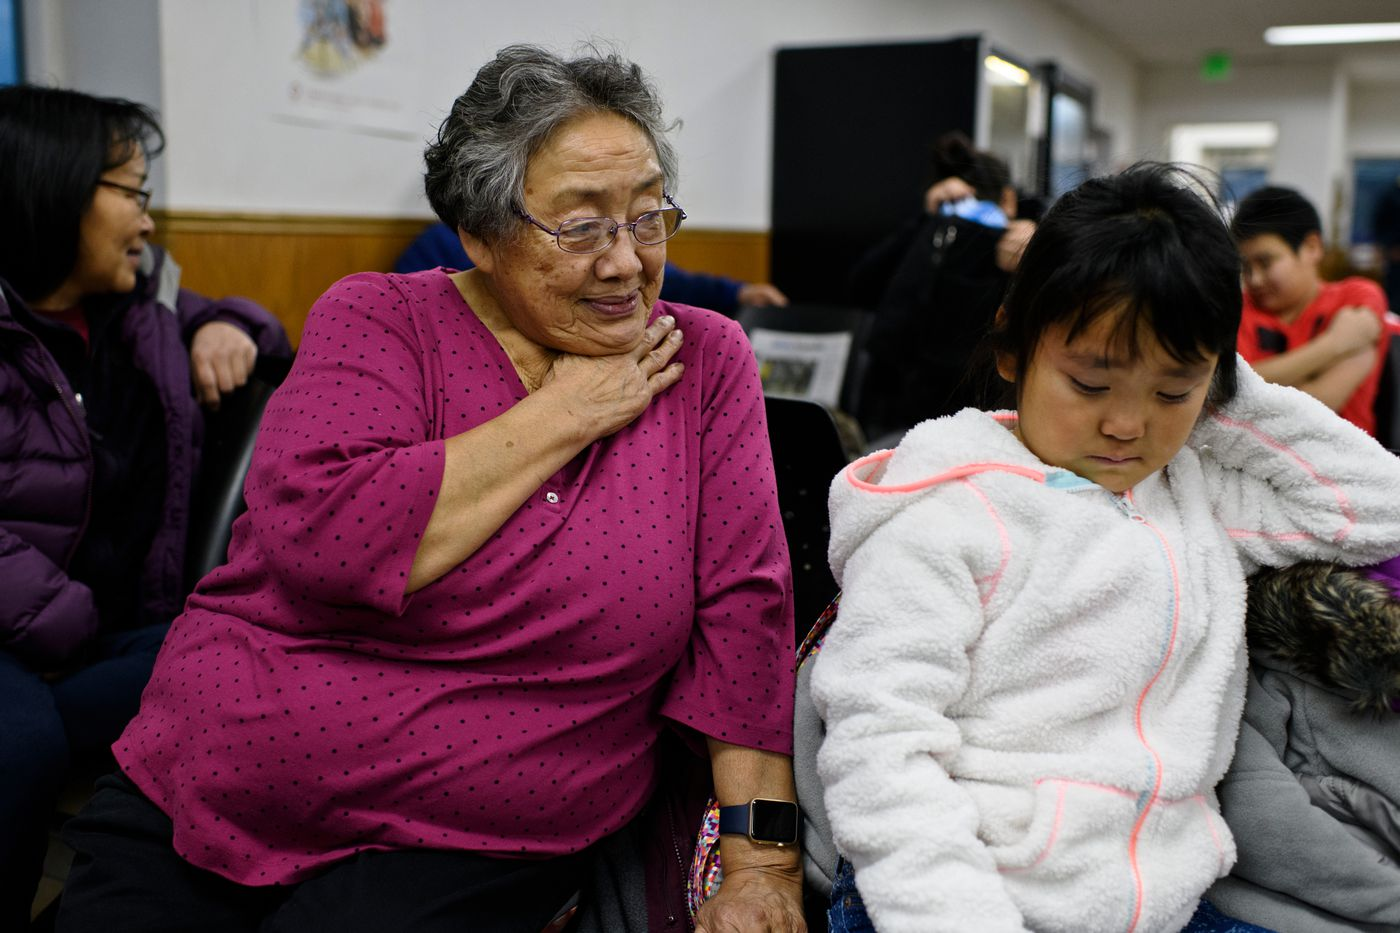 Hannah Paniyavluk Loon, of Kotzebue, was putting her granddaughter Willow, 7, on a plane back home to Selawik on December 2, 2018. (Marc Lester / ADN)